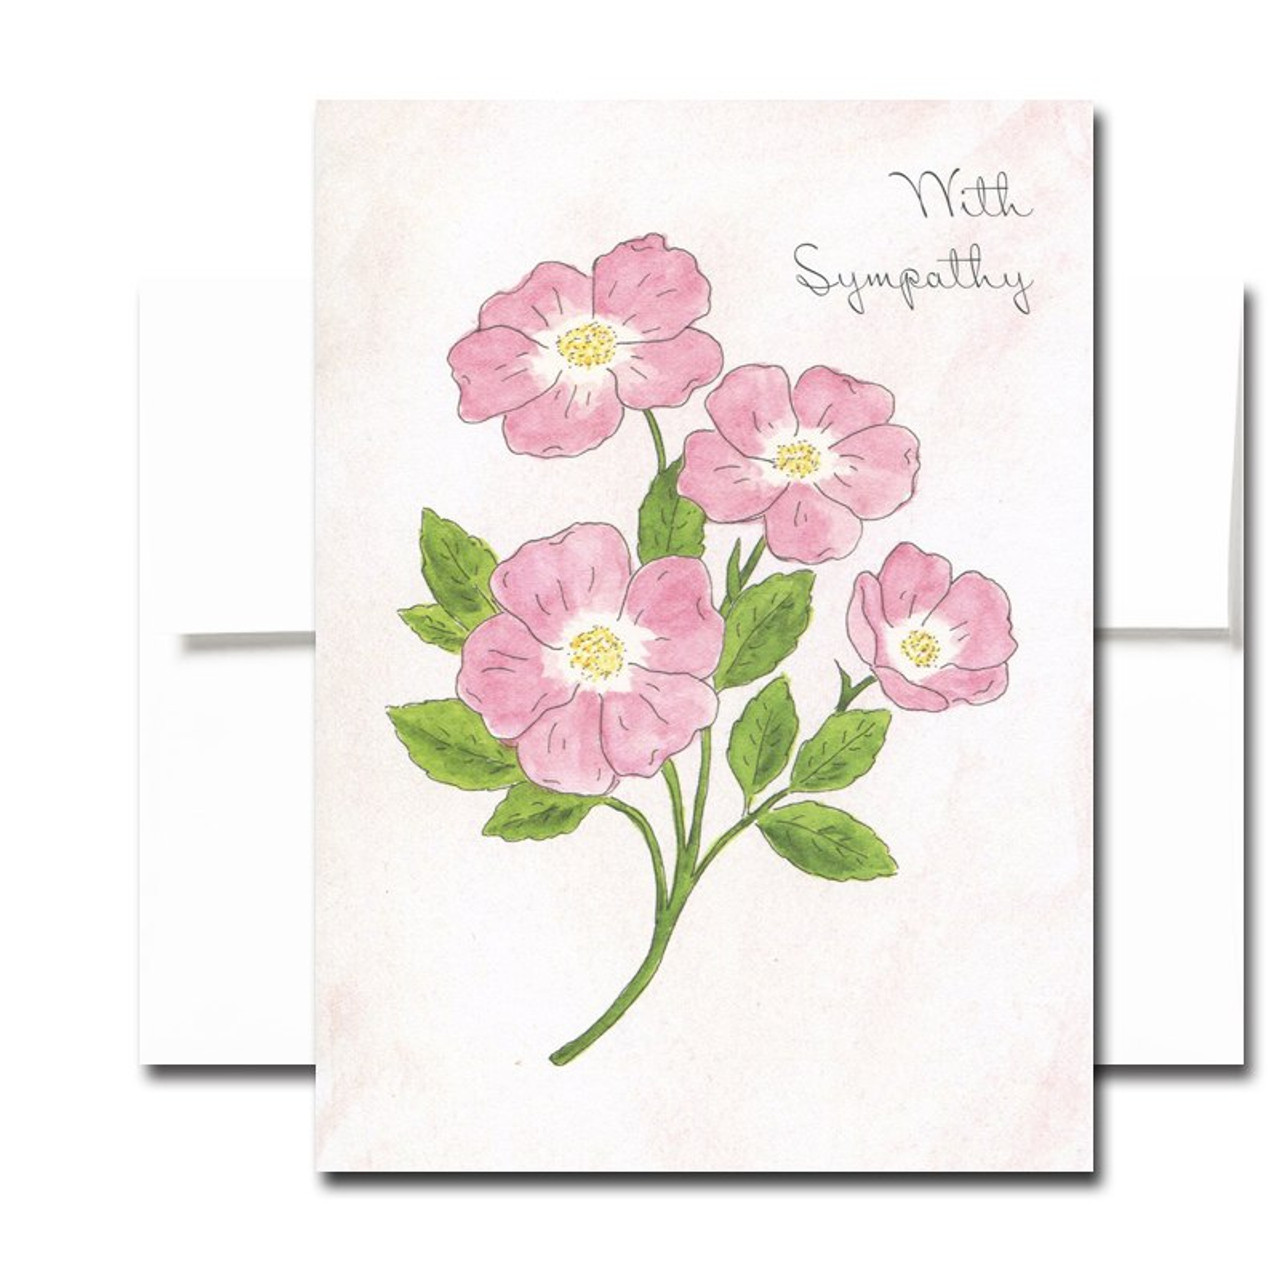 Blank Sympathy Card: Sweet Briar. Hand-painted watercolor illustration.